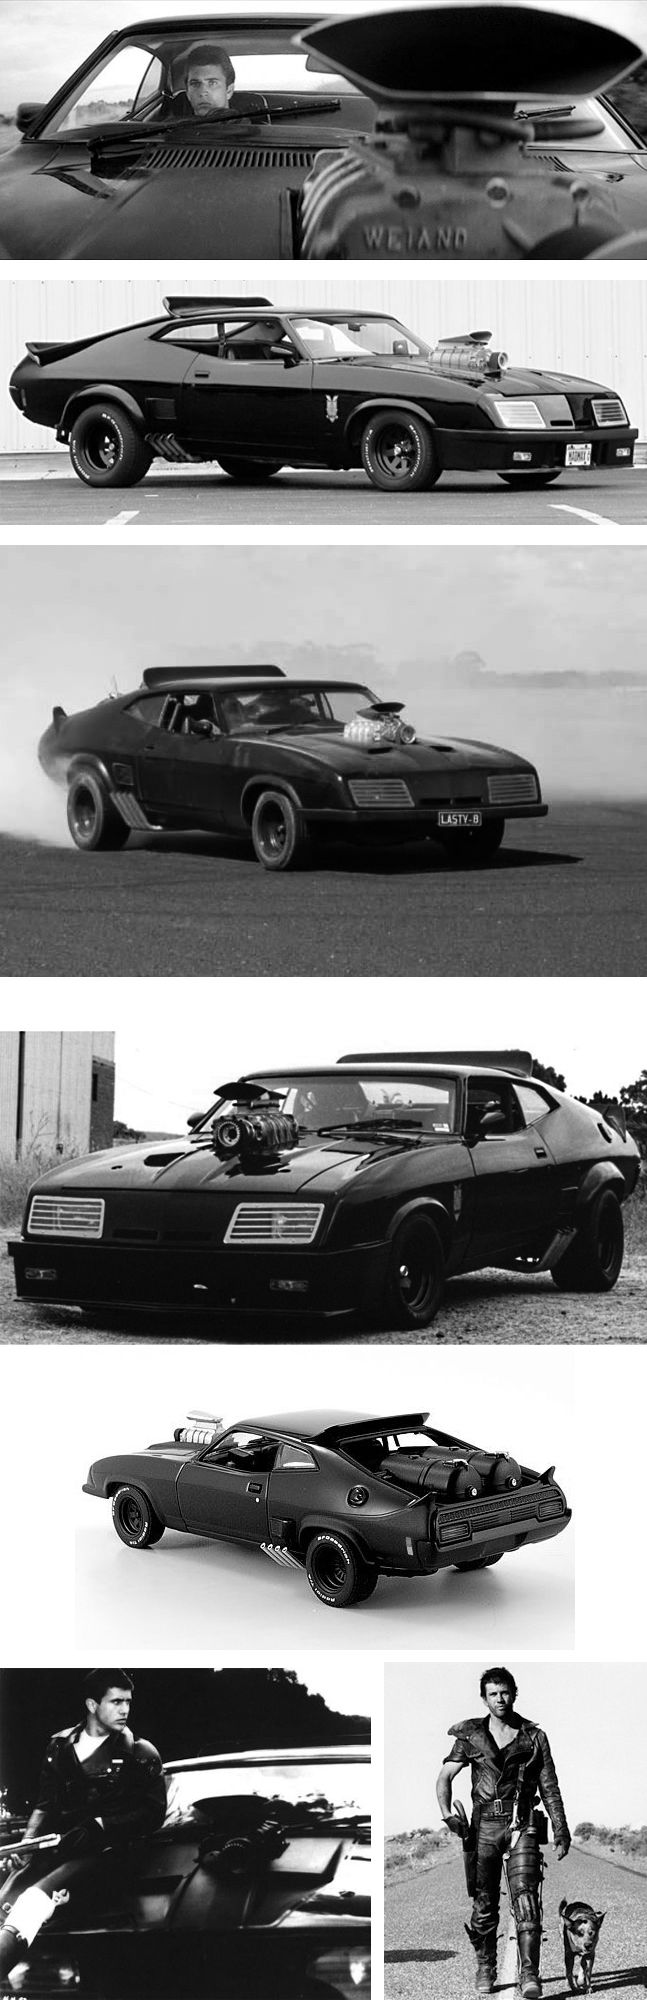 Ford Falcon XB GT V8 Interceptor - Mad Max